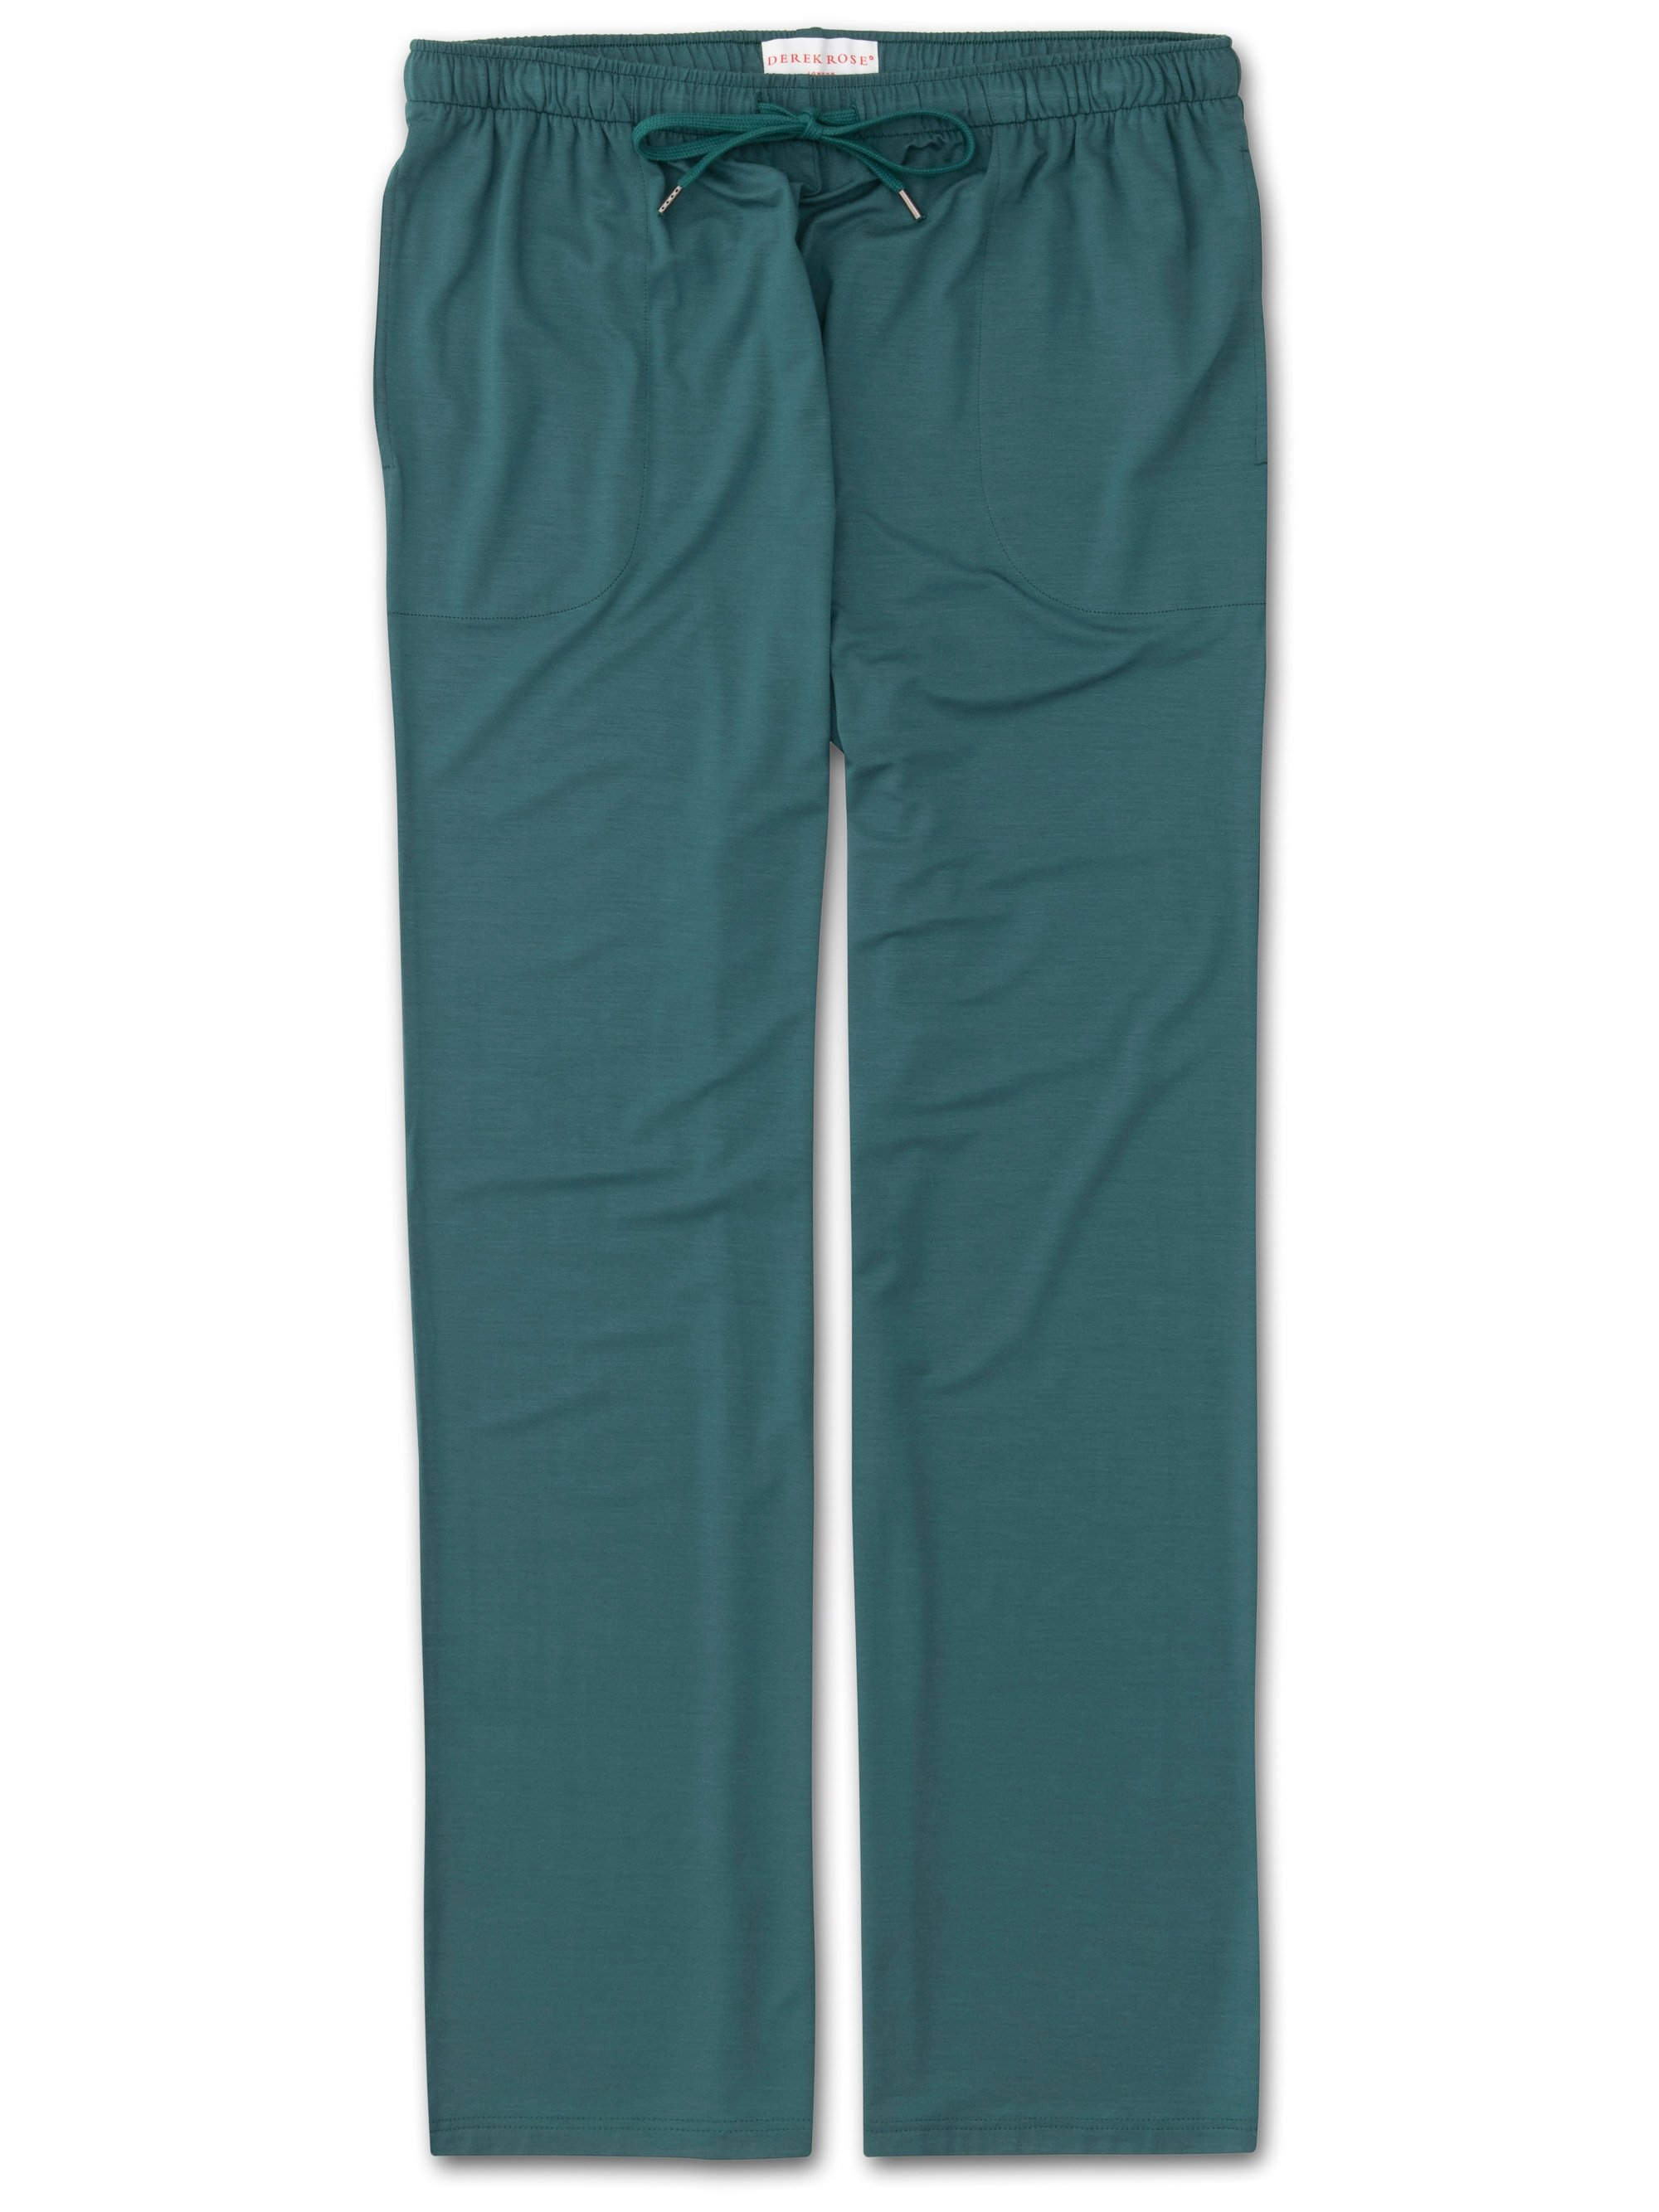 Men's Jersey Trousers Basel 8 Micro Modal Stretch Green